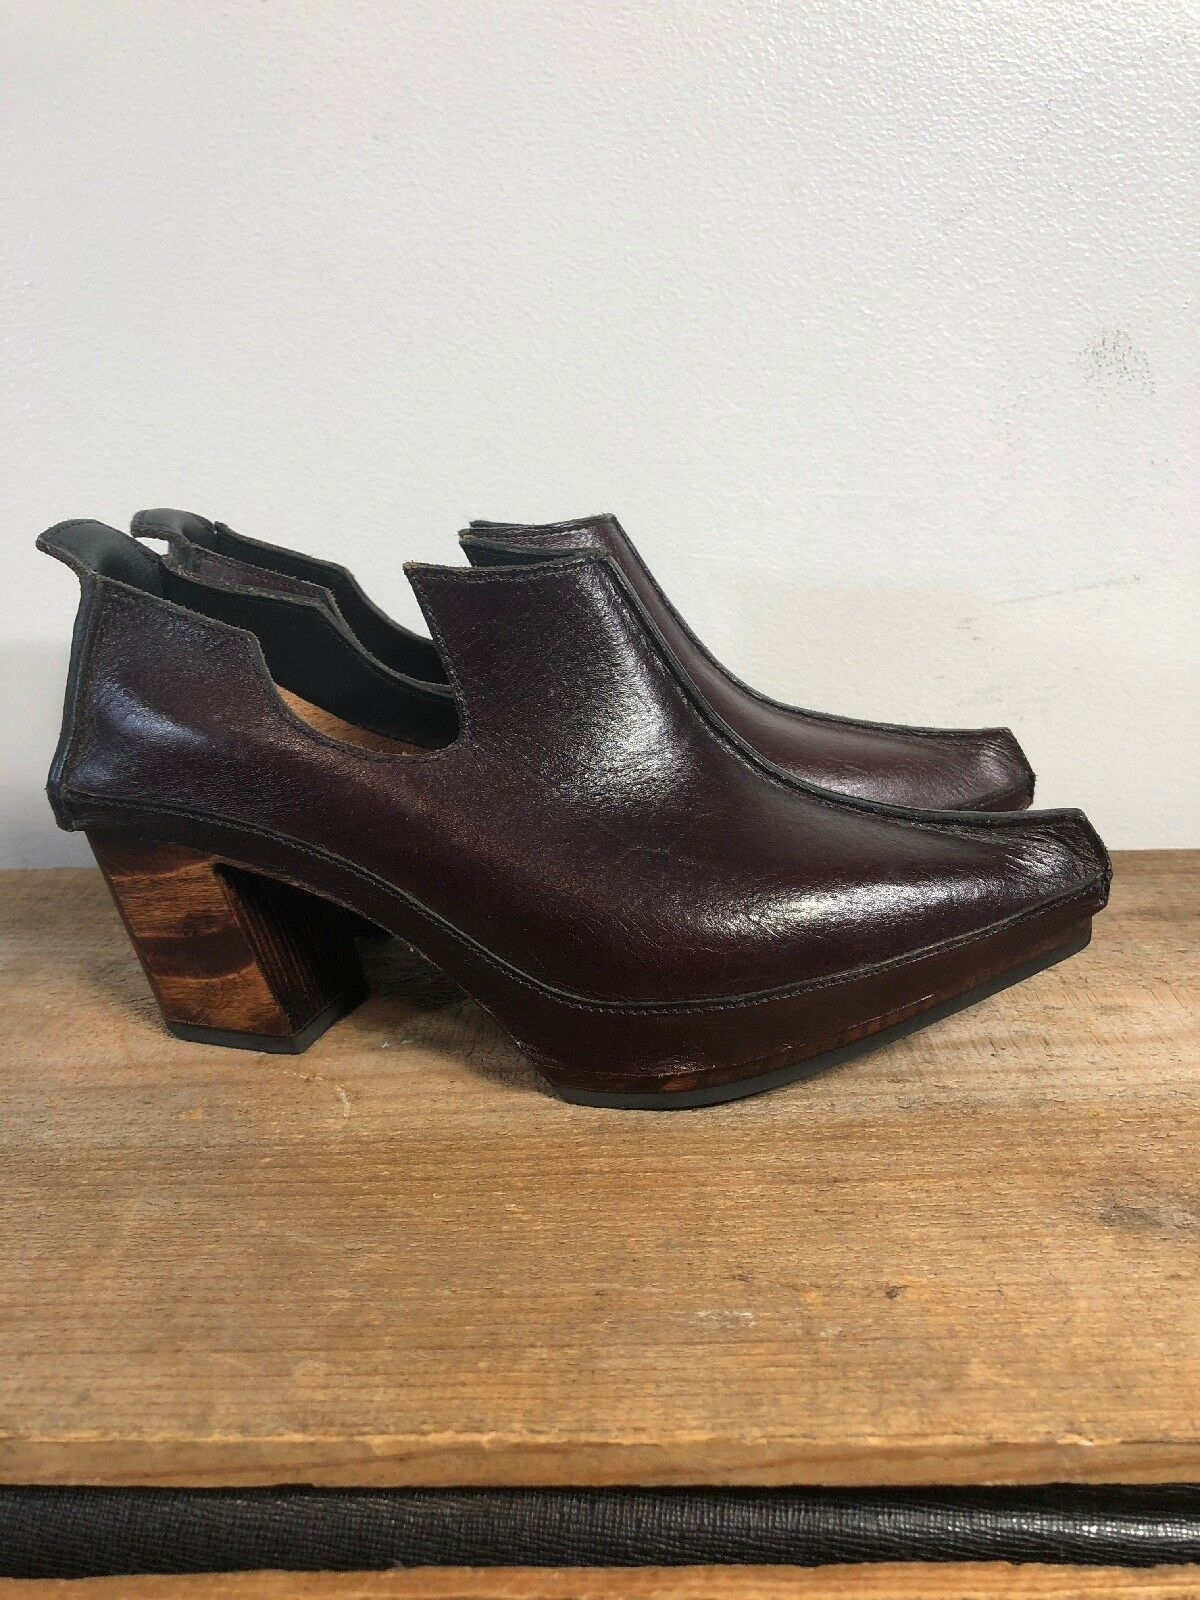 alta quaità Fluevog Lenora Hand Crafted Wine Leather Slip On Clog scarpe, scarpe, scarpe, Wm's Sz 6  punto vendita